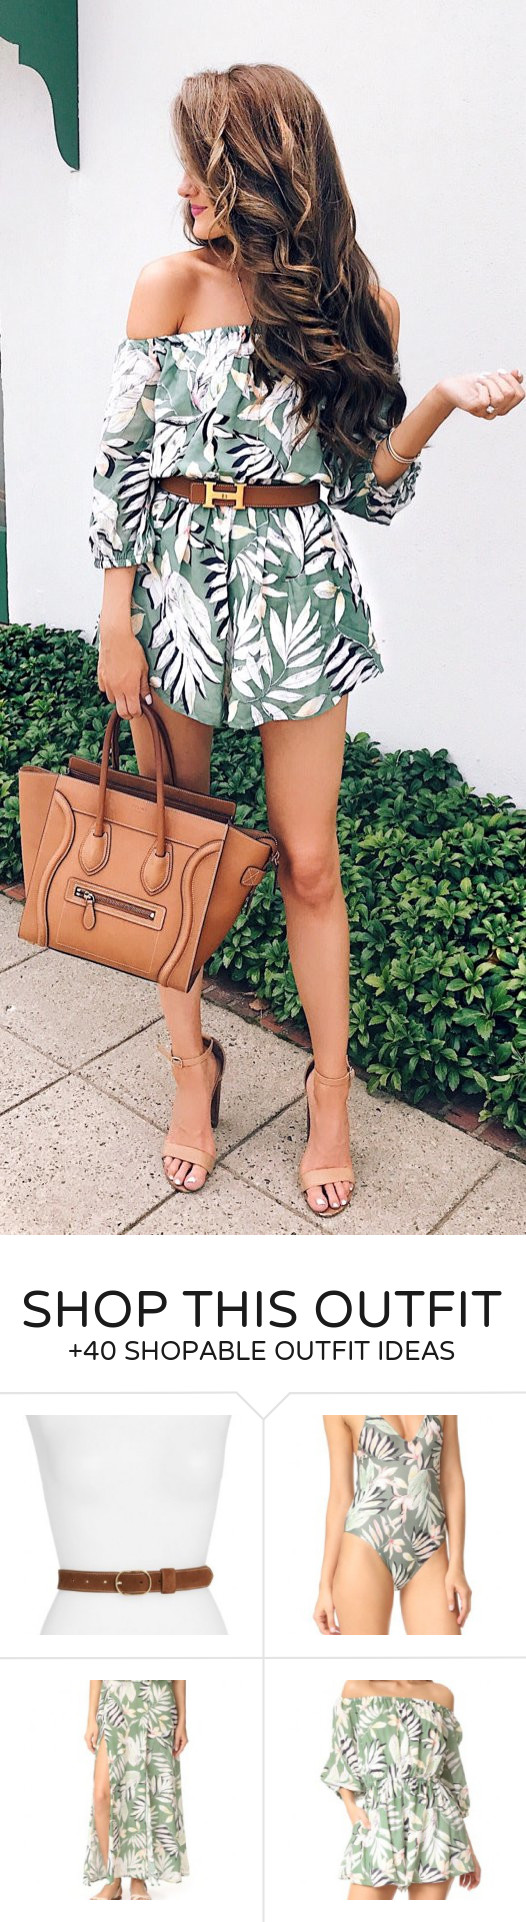 fb83810dac7  summer  outfits Tropical Off The Shoulder Romper + Camel Leather Tote Bag  + Nude